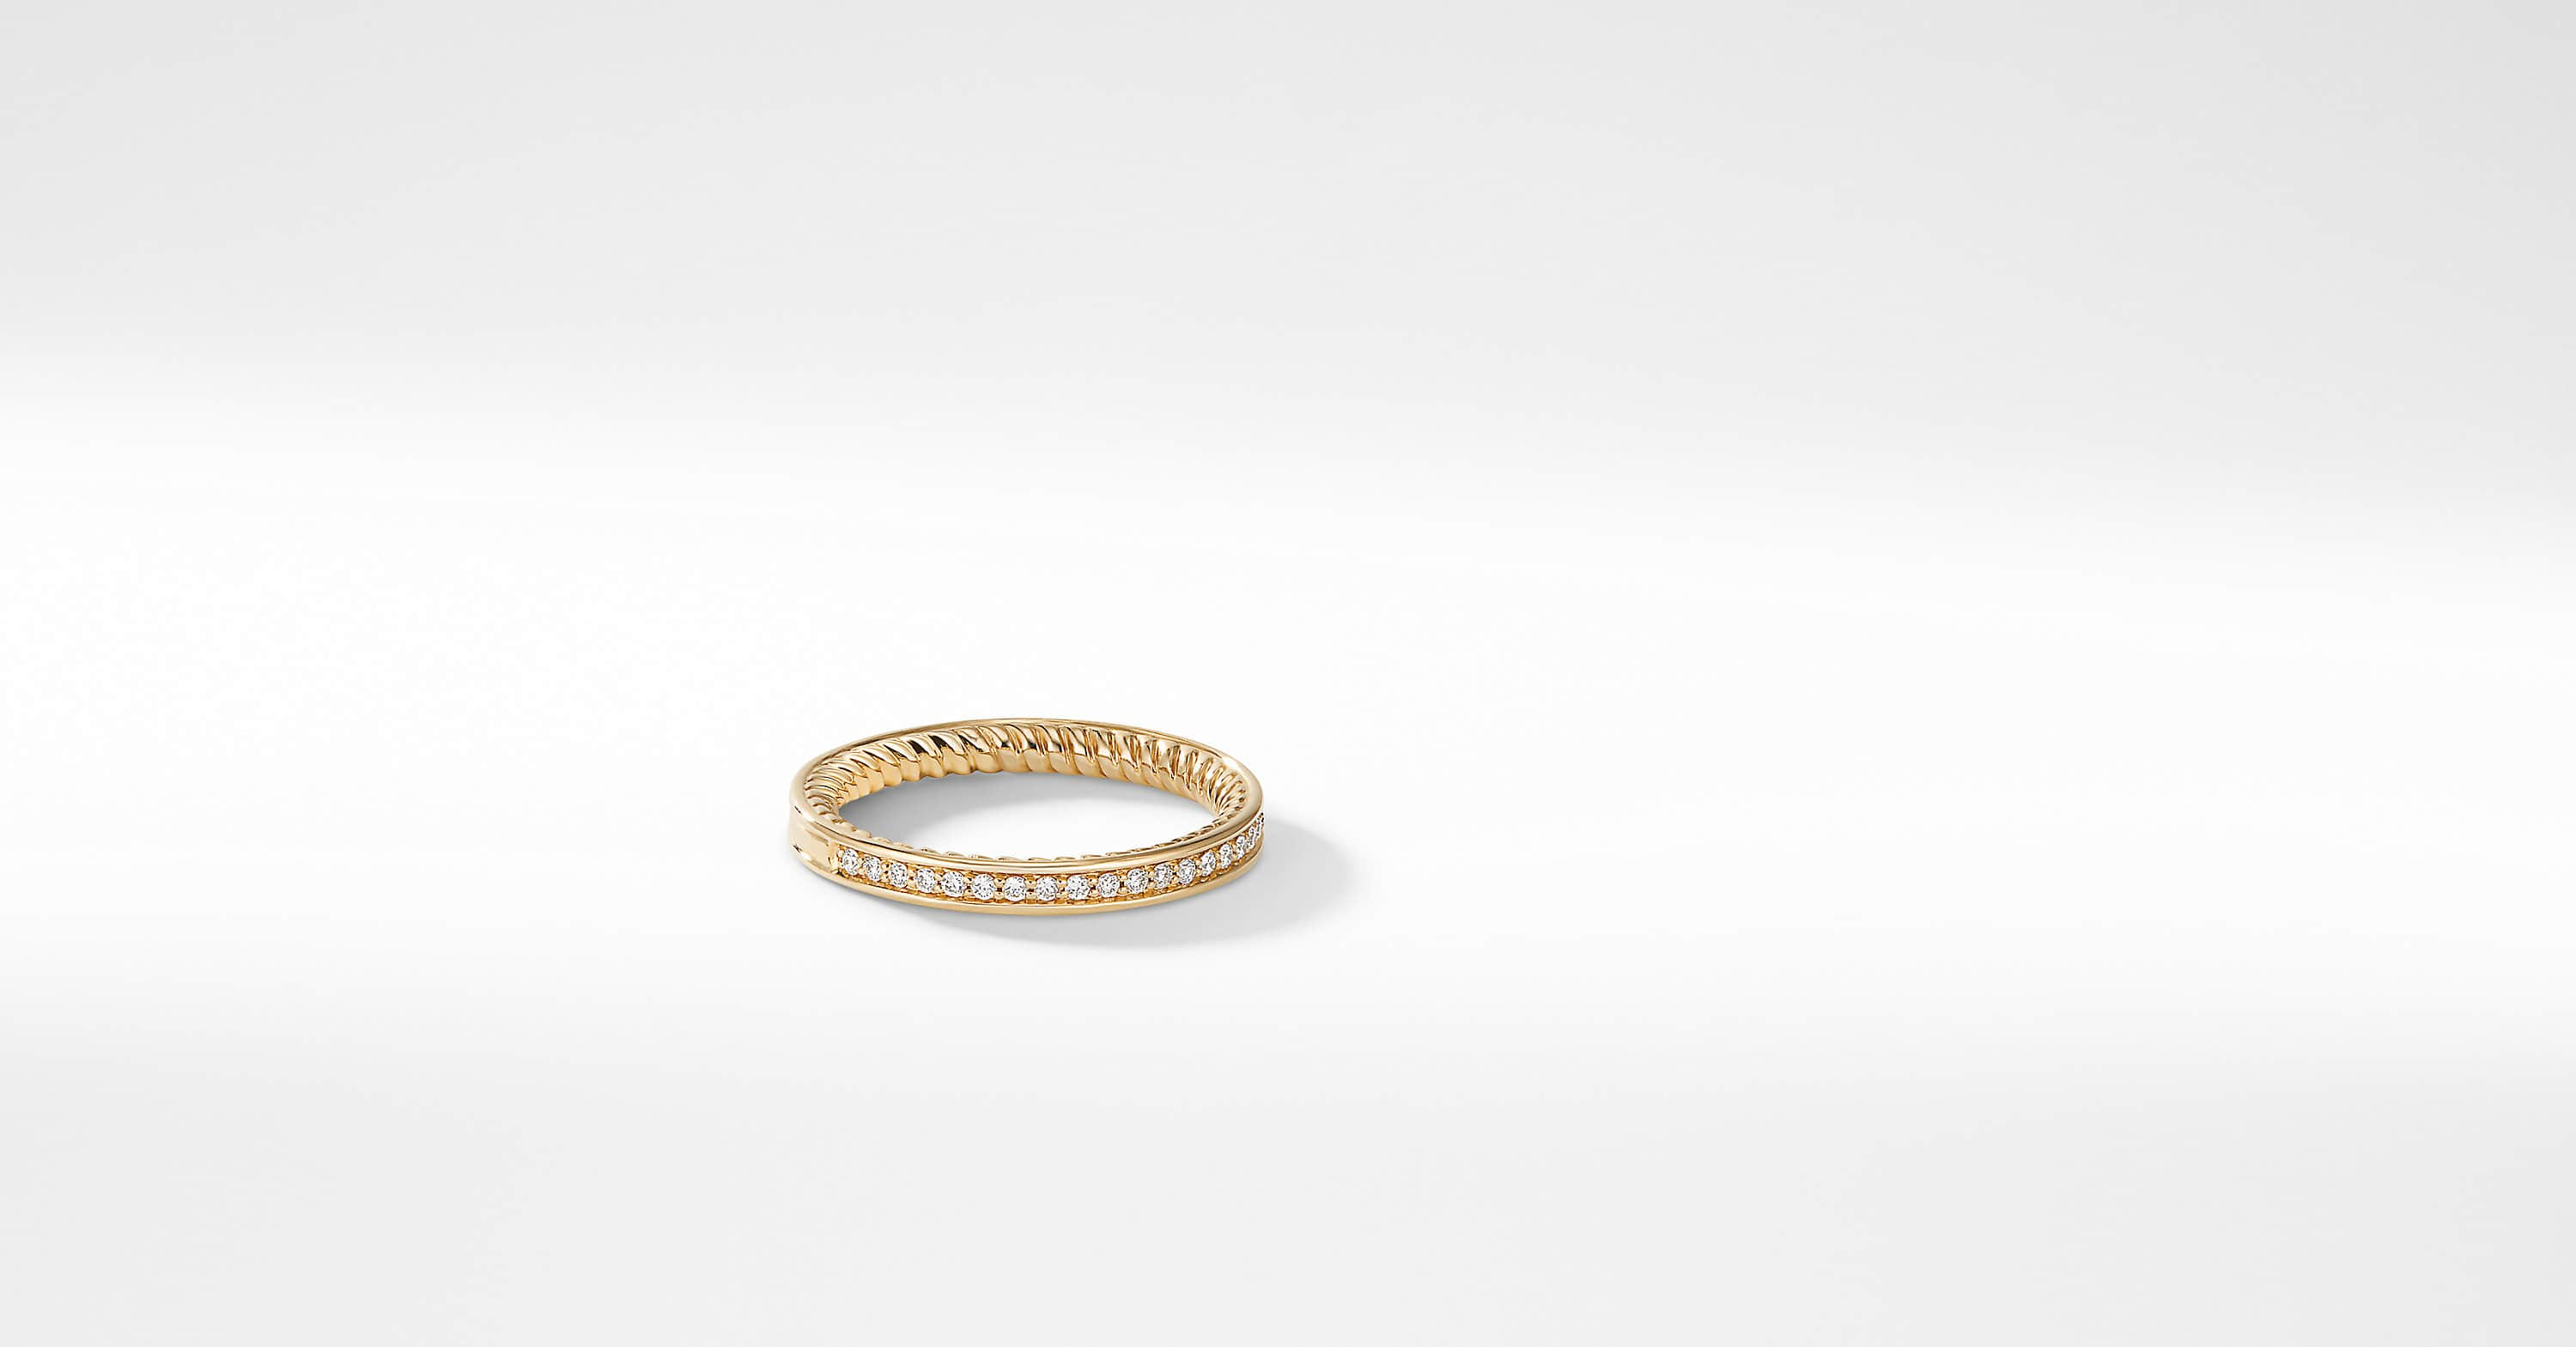 DY Eden Eternity Wedding Band with Diamonds in 18K Gold, 2.3mm